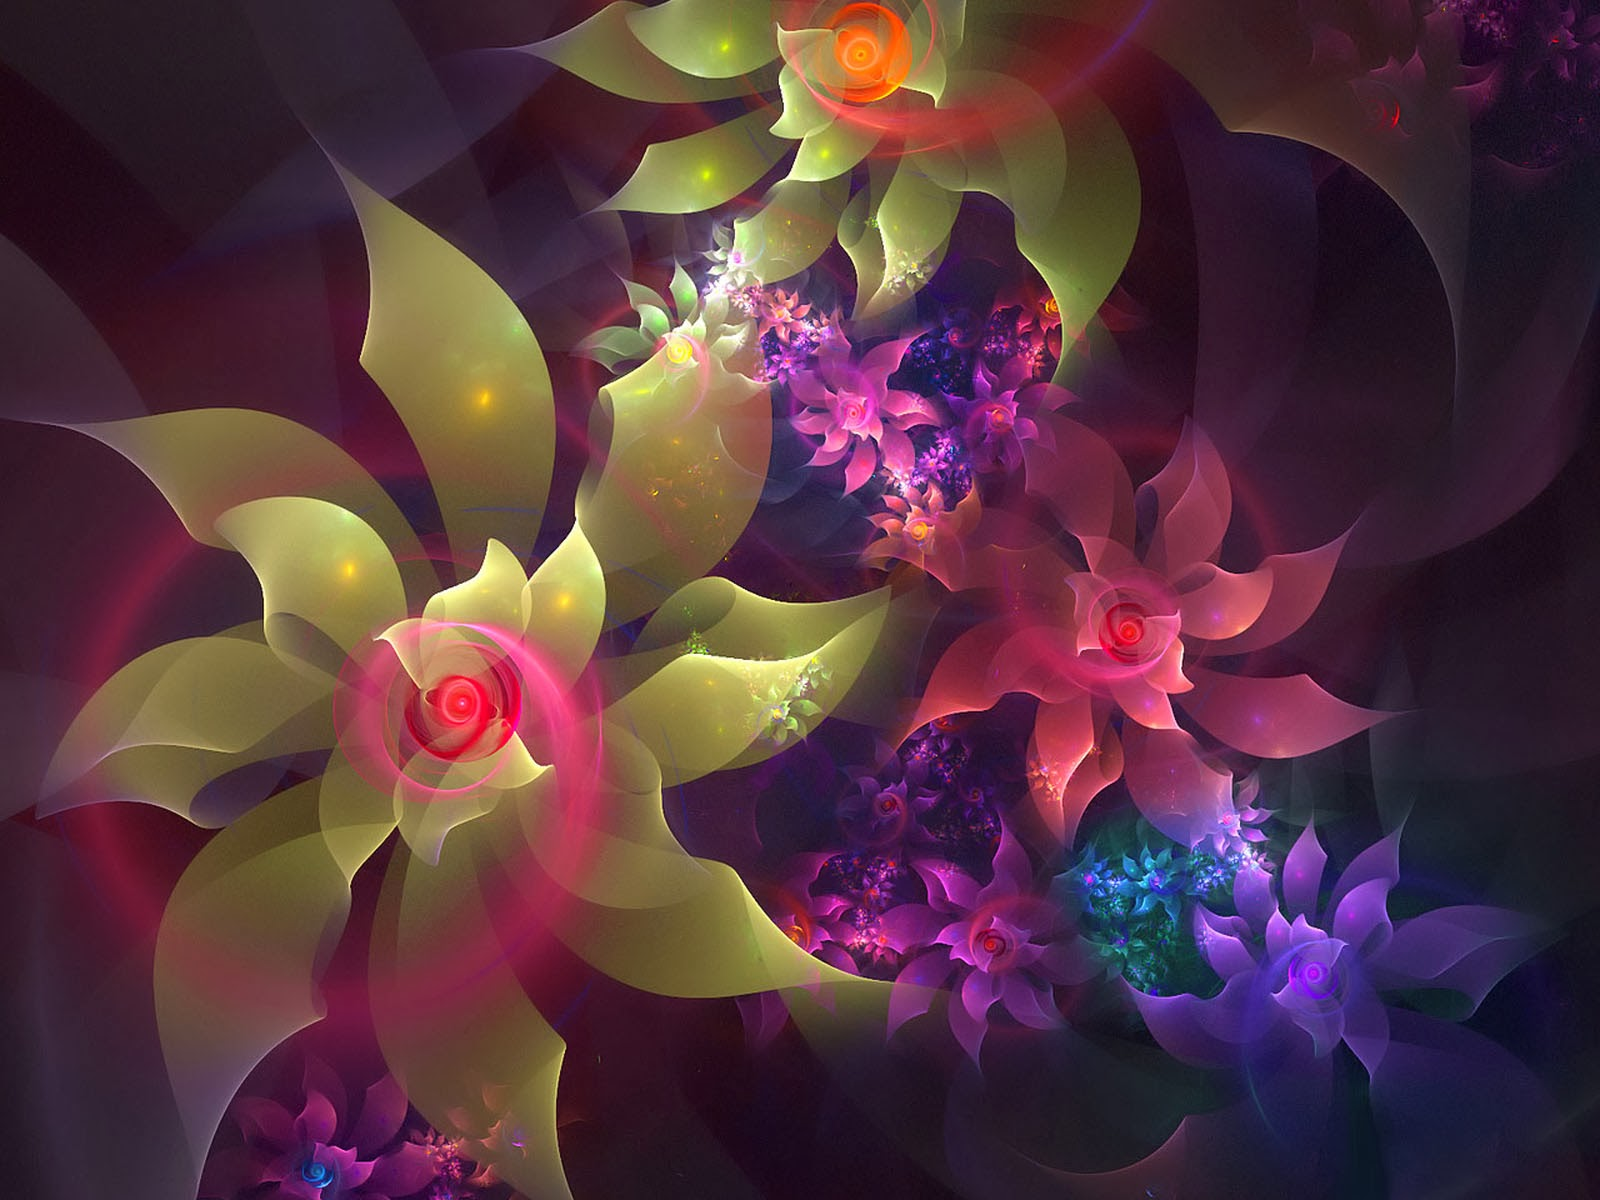 Abstract Design Flower Wallpaper: Wallpapers: 3D Flowers Wallpapers